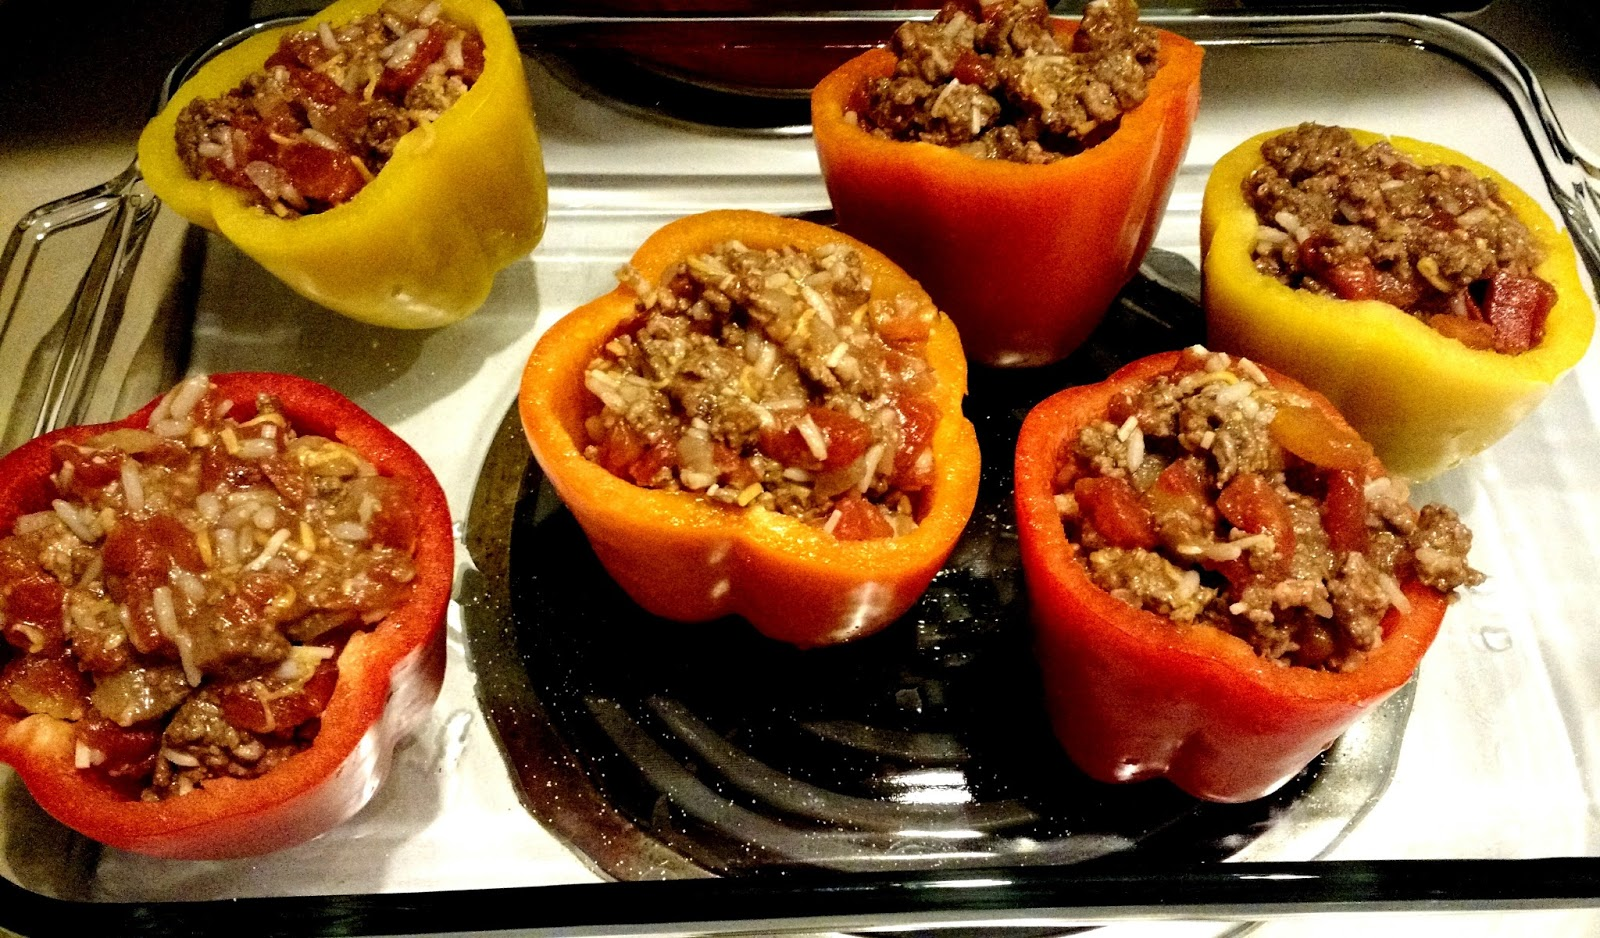 Stuffed and ready for the oven.